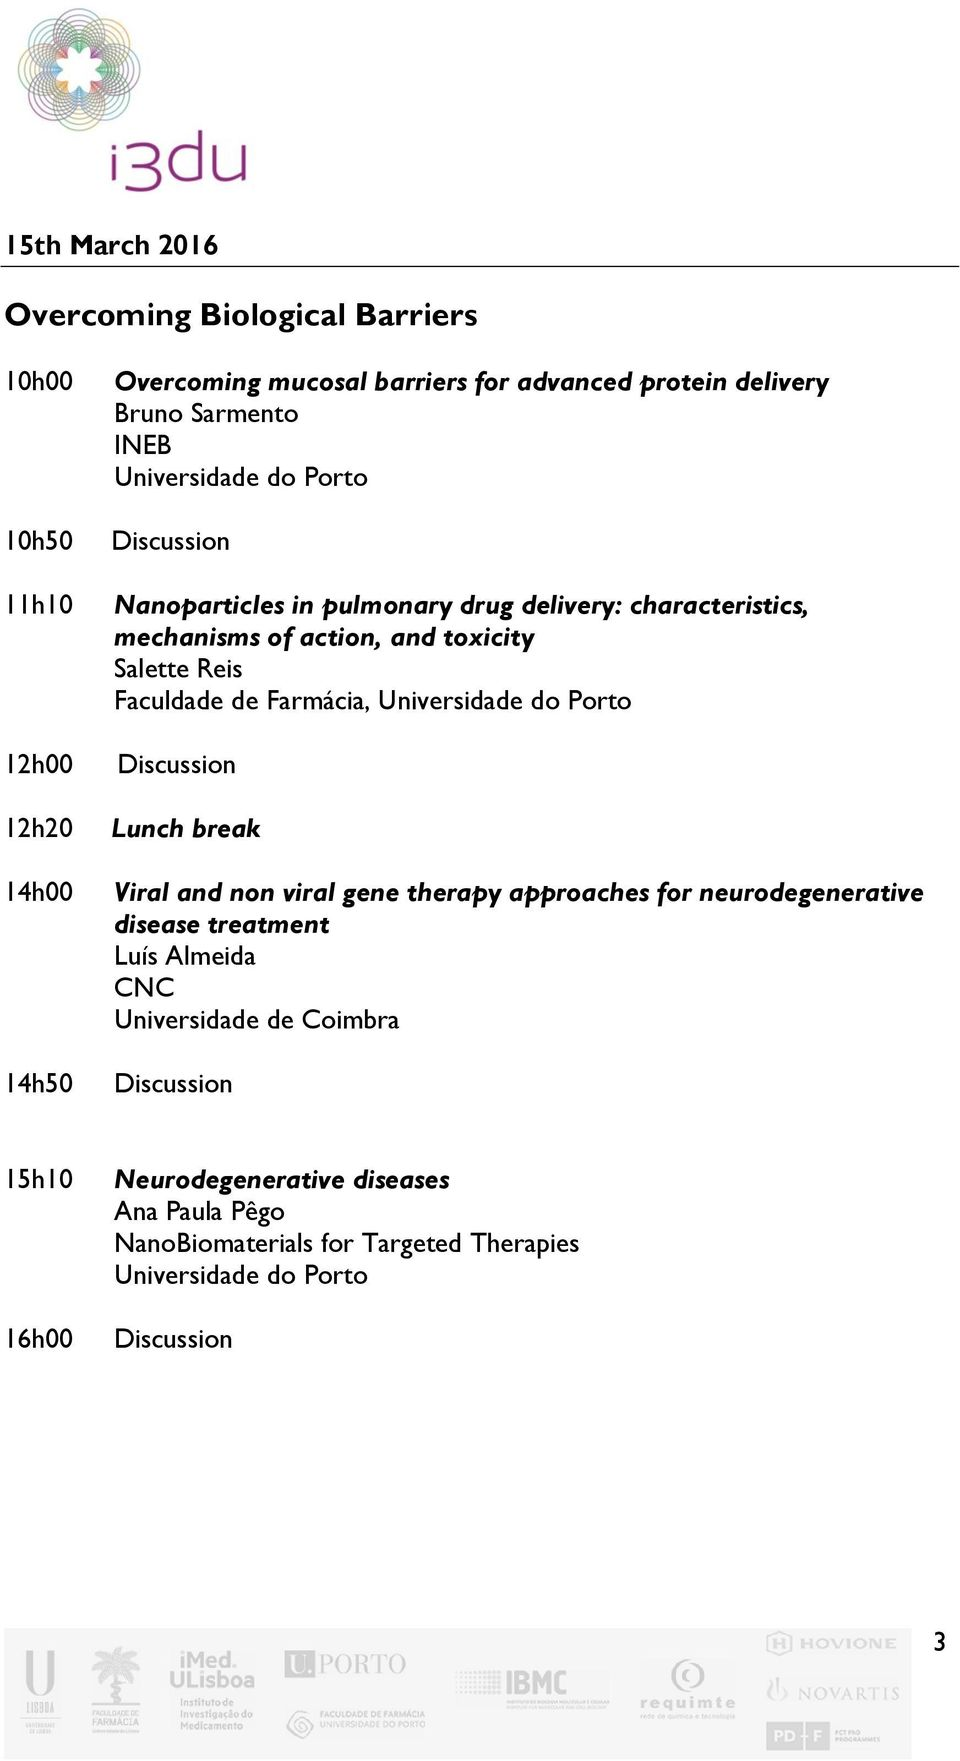 Reis Faculdade de Farmácia, Universidade do Porto Viral and non viral gene therapy approaches for neurodegenerative disease treatment Luís